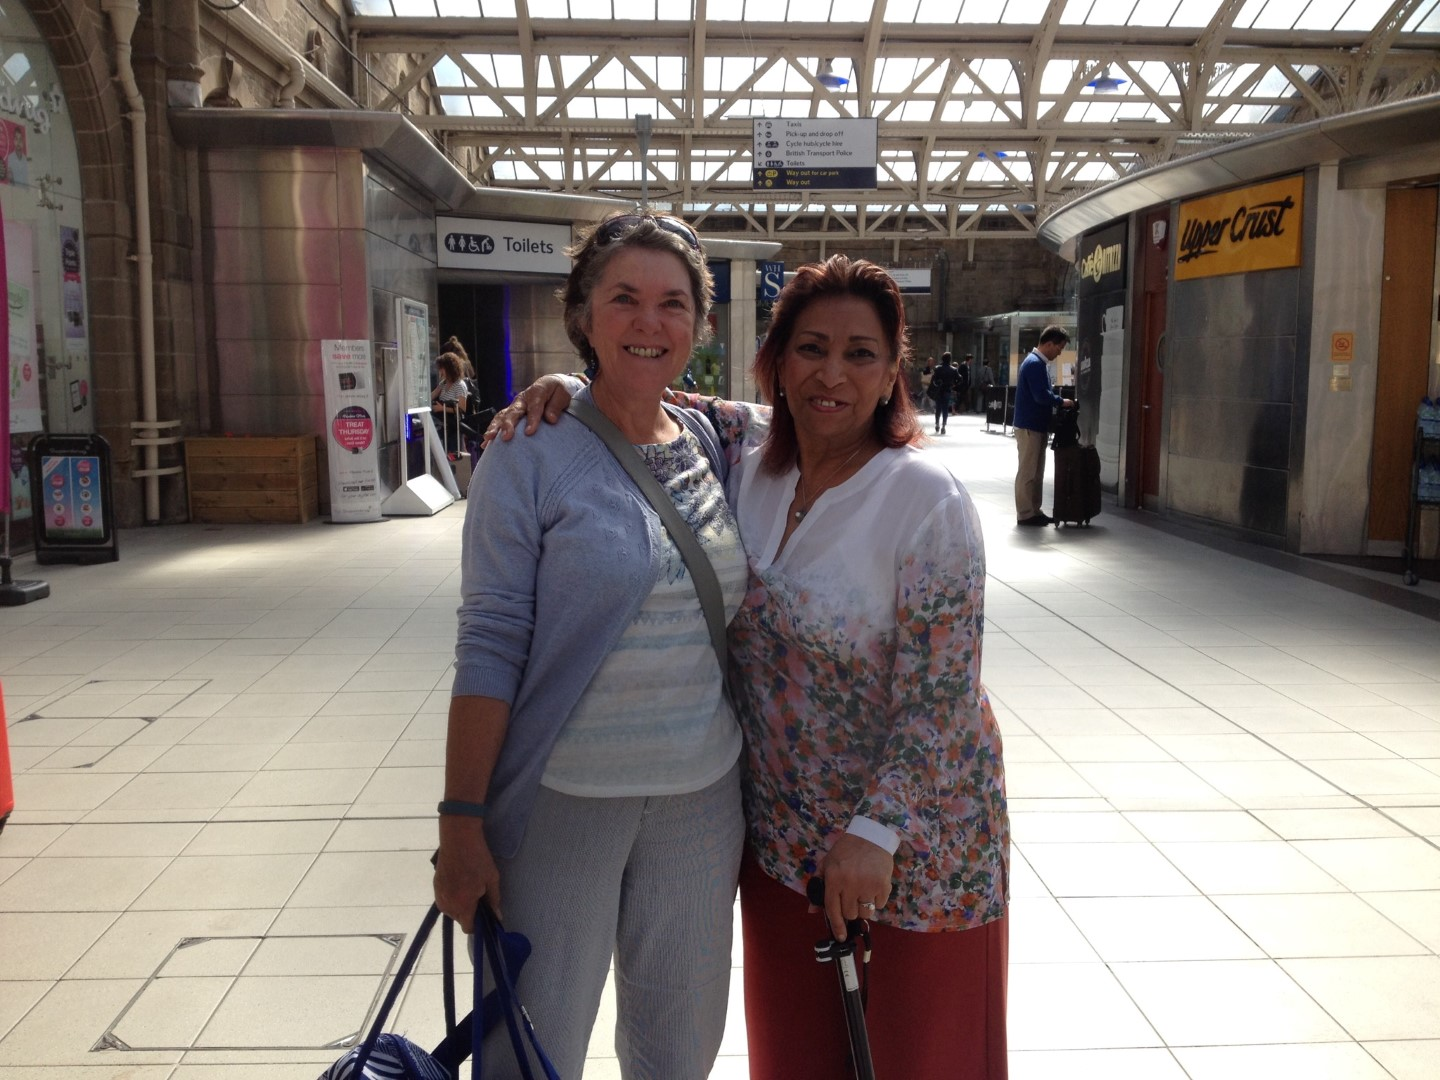 Two women in their 60s reunited at a train station.